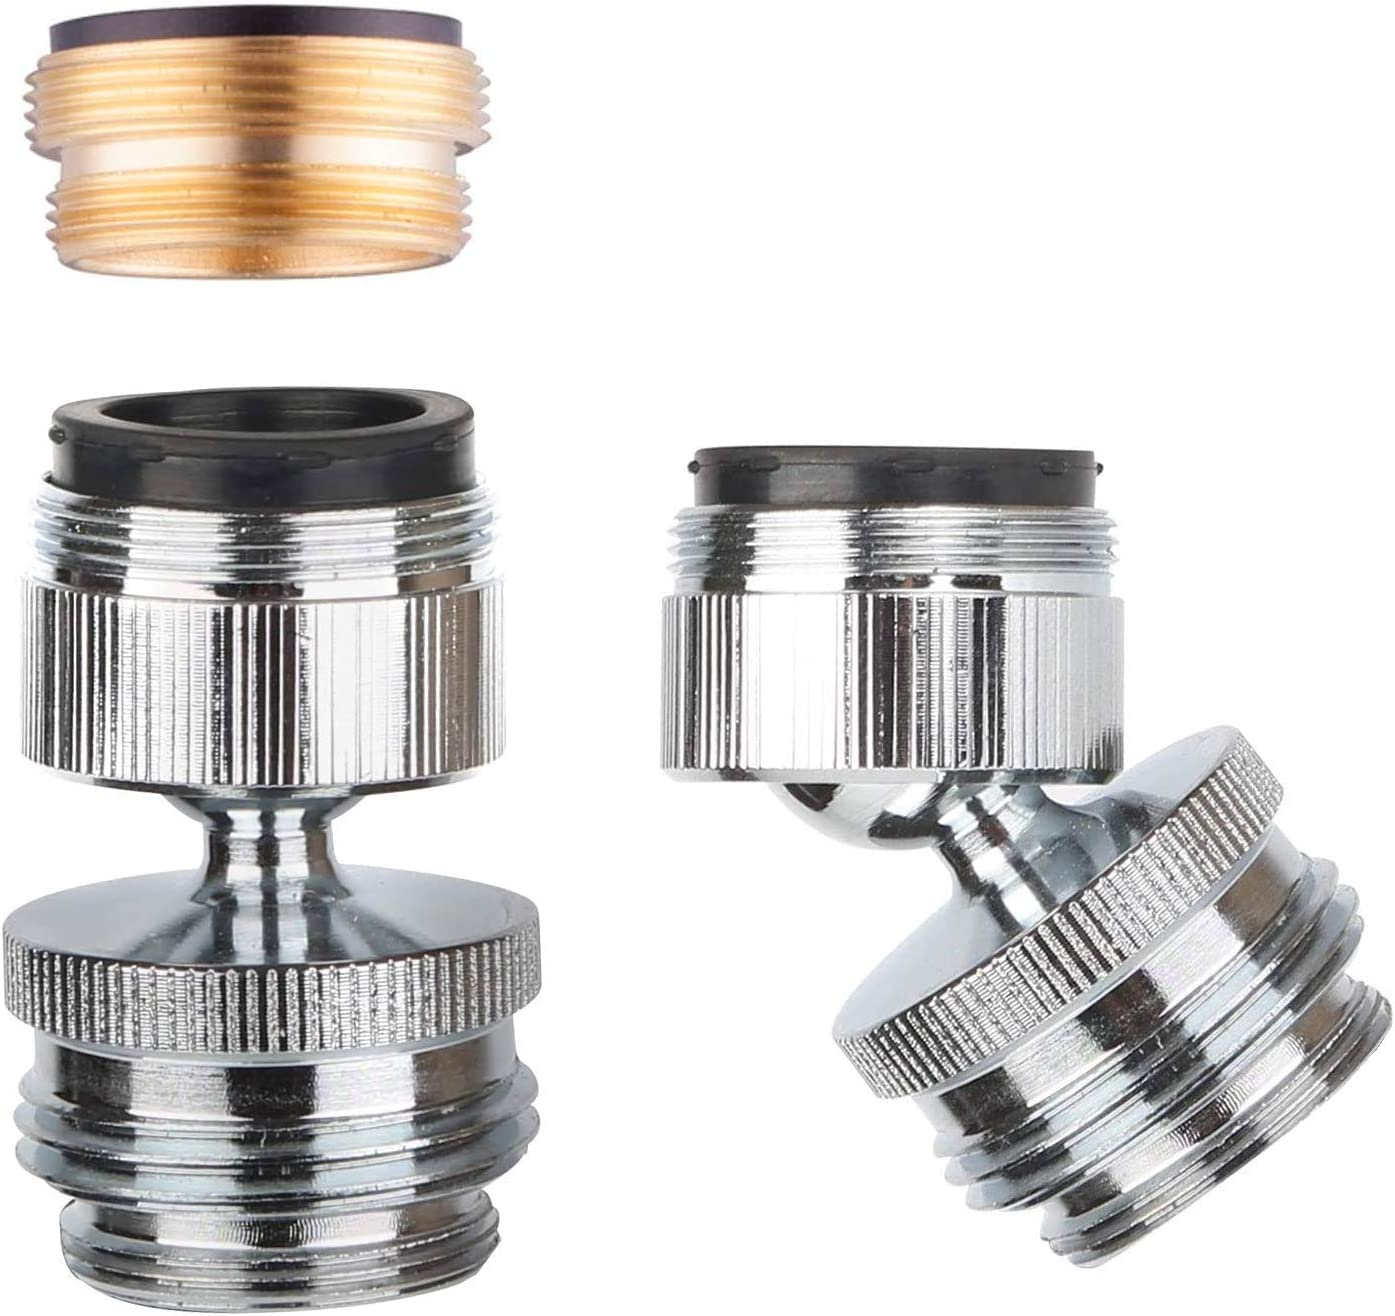 Faucet Adapter, Swivel Aerator Adapter Kit, Sink Faucet to Hose Adapter, Sink to Garden Water Hose, Female to Male Aerator Adapter, Brass Chrome Finish